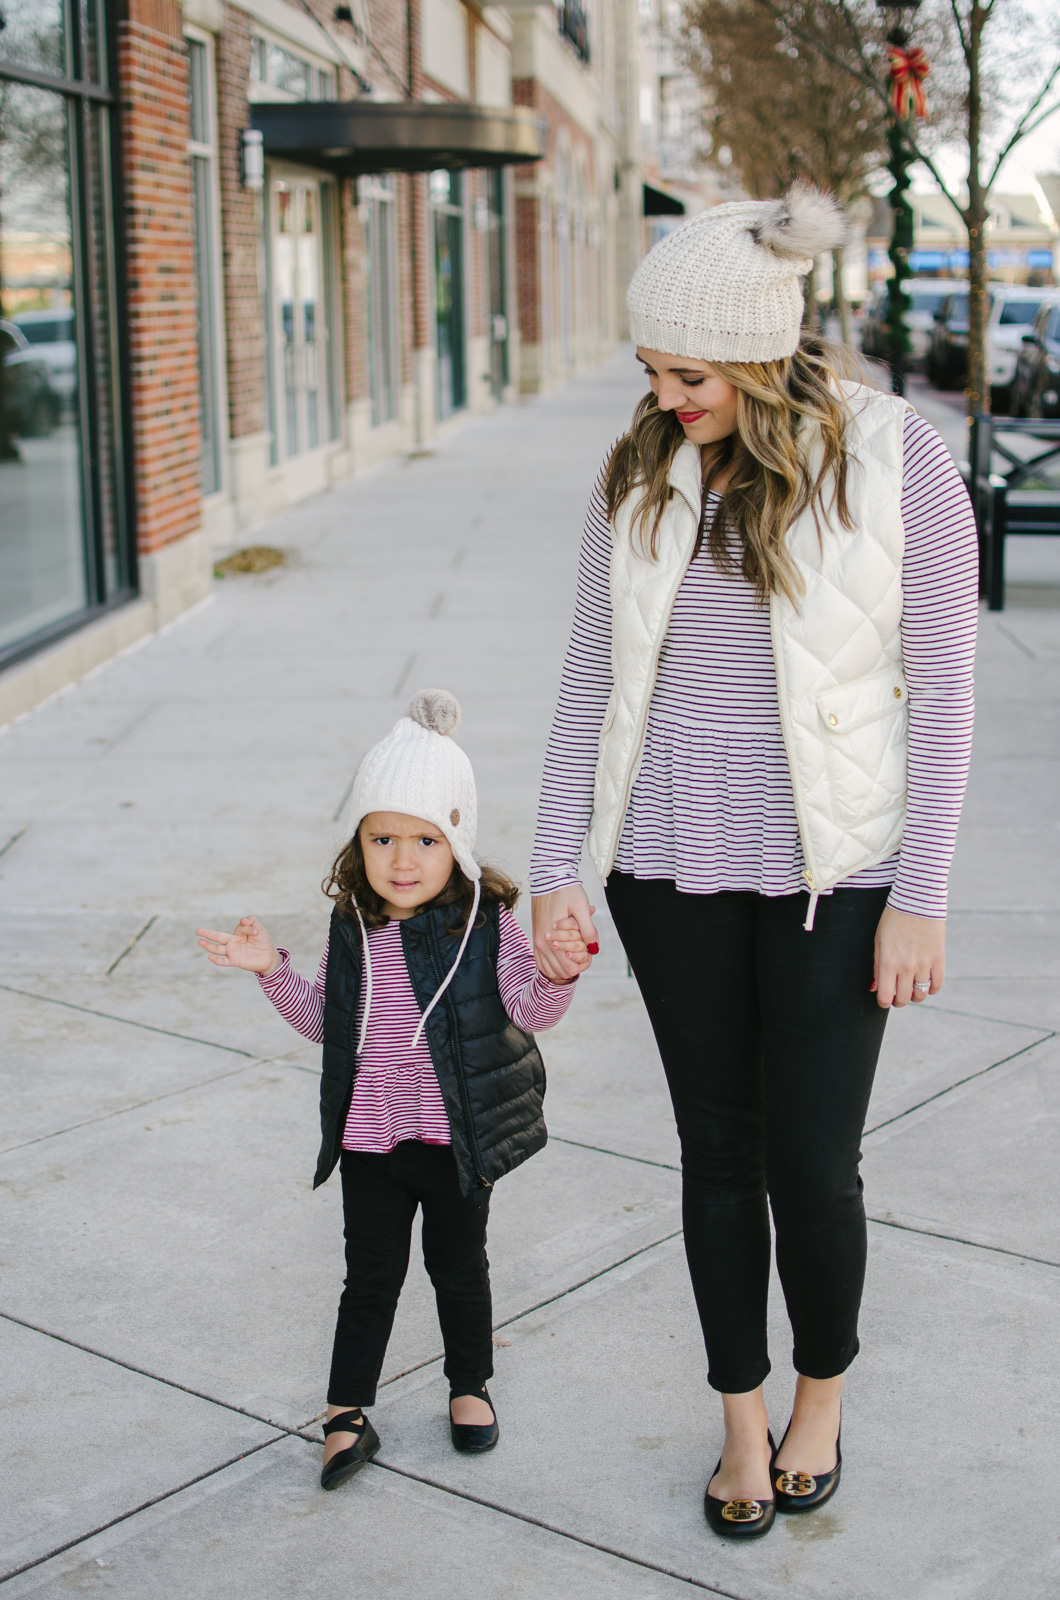 mommy and me outfits for winter | See more mommy and me matching outfits at bylaurenm.com!